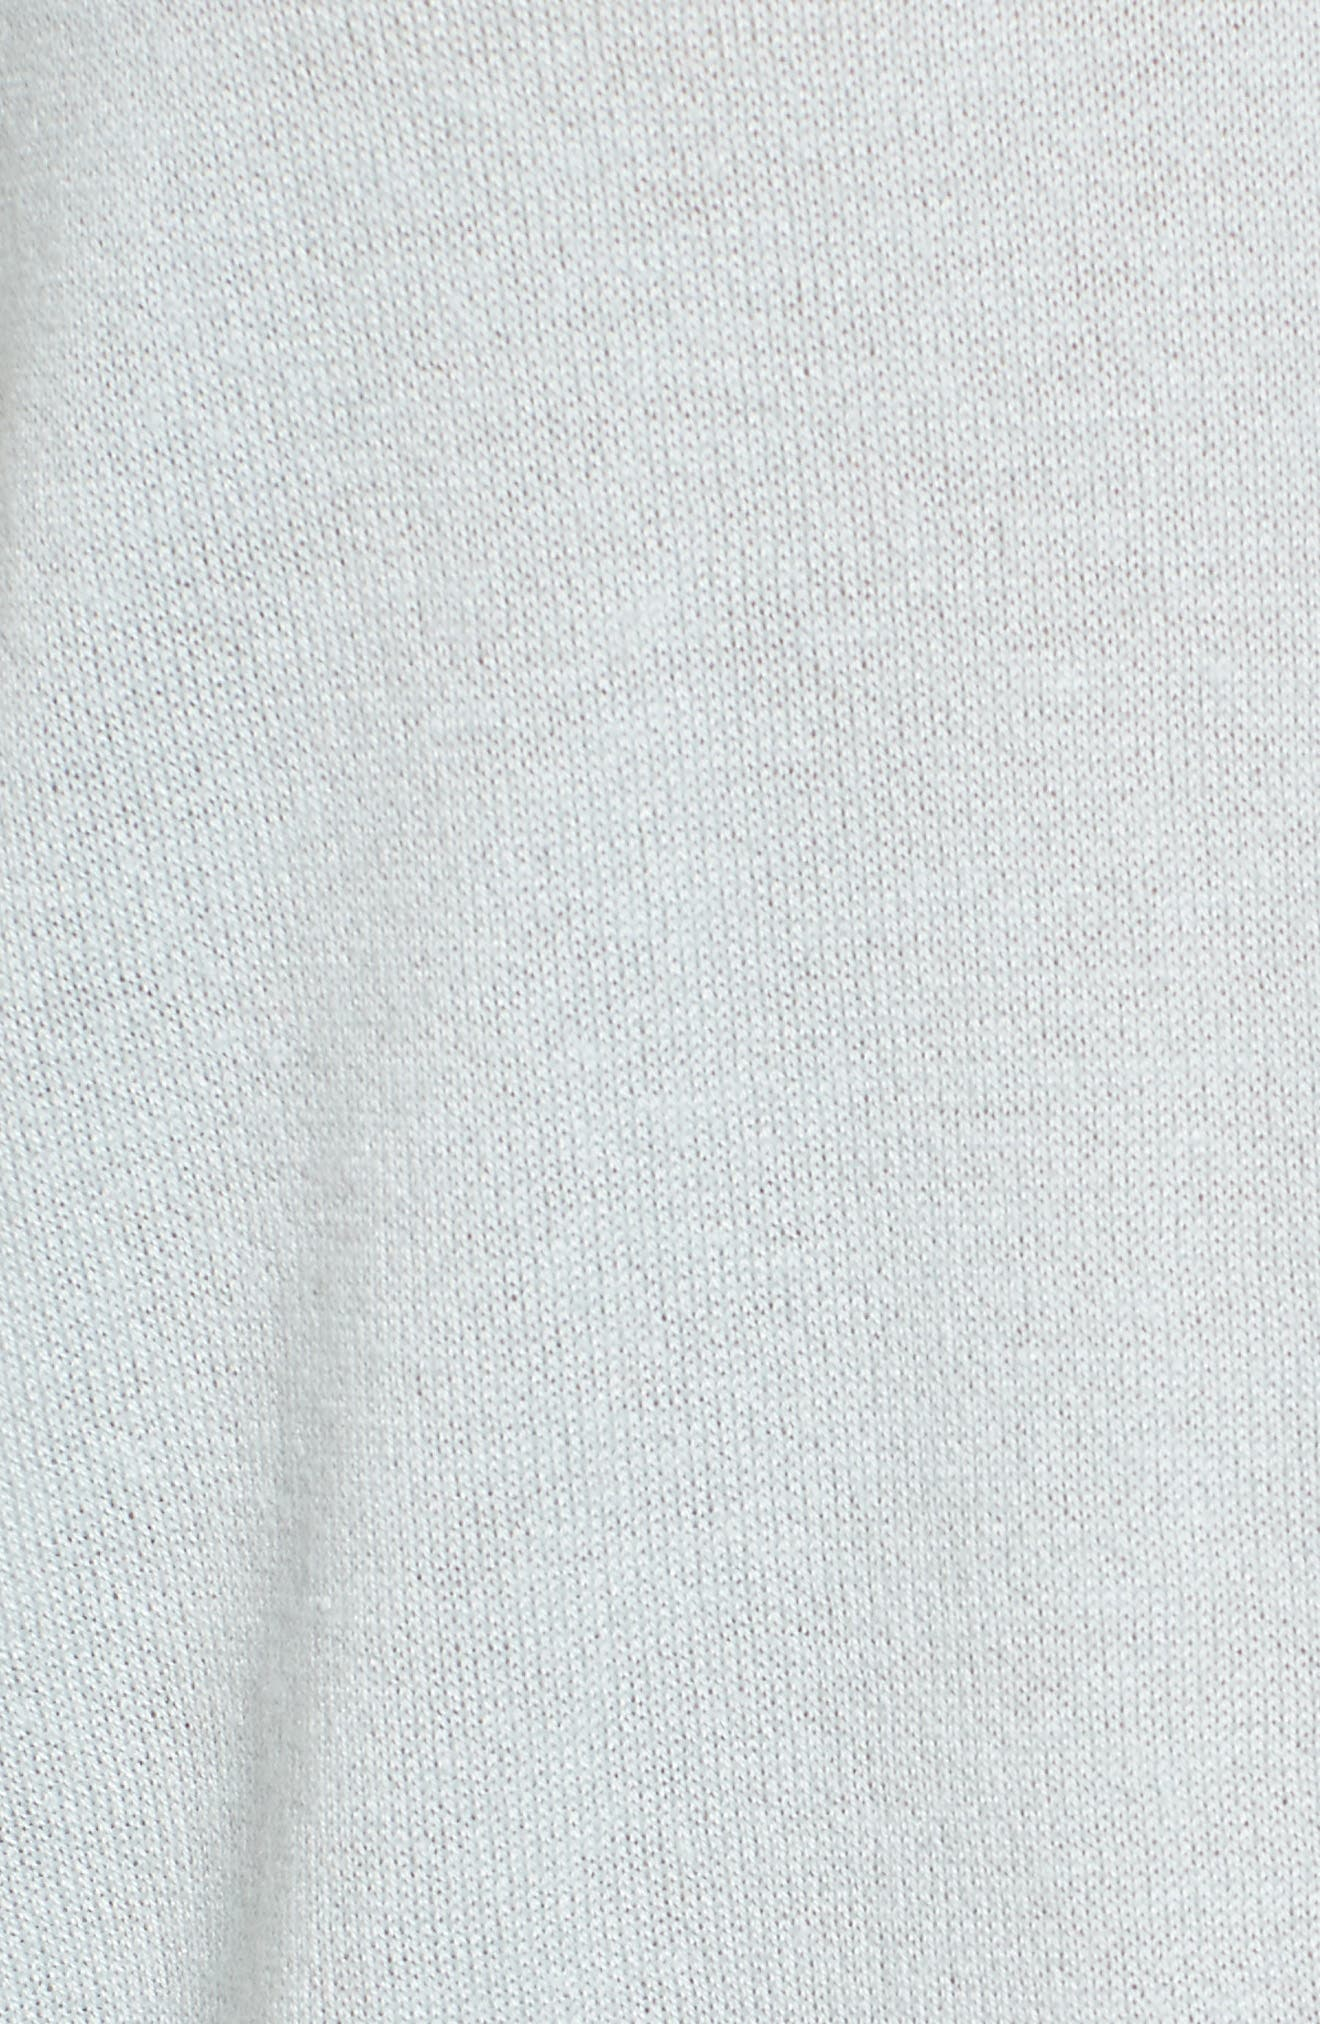 High/Low Silk & Cashmere Sweater,                             Alternate thumbnail 6, color,                             330